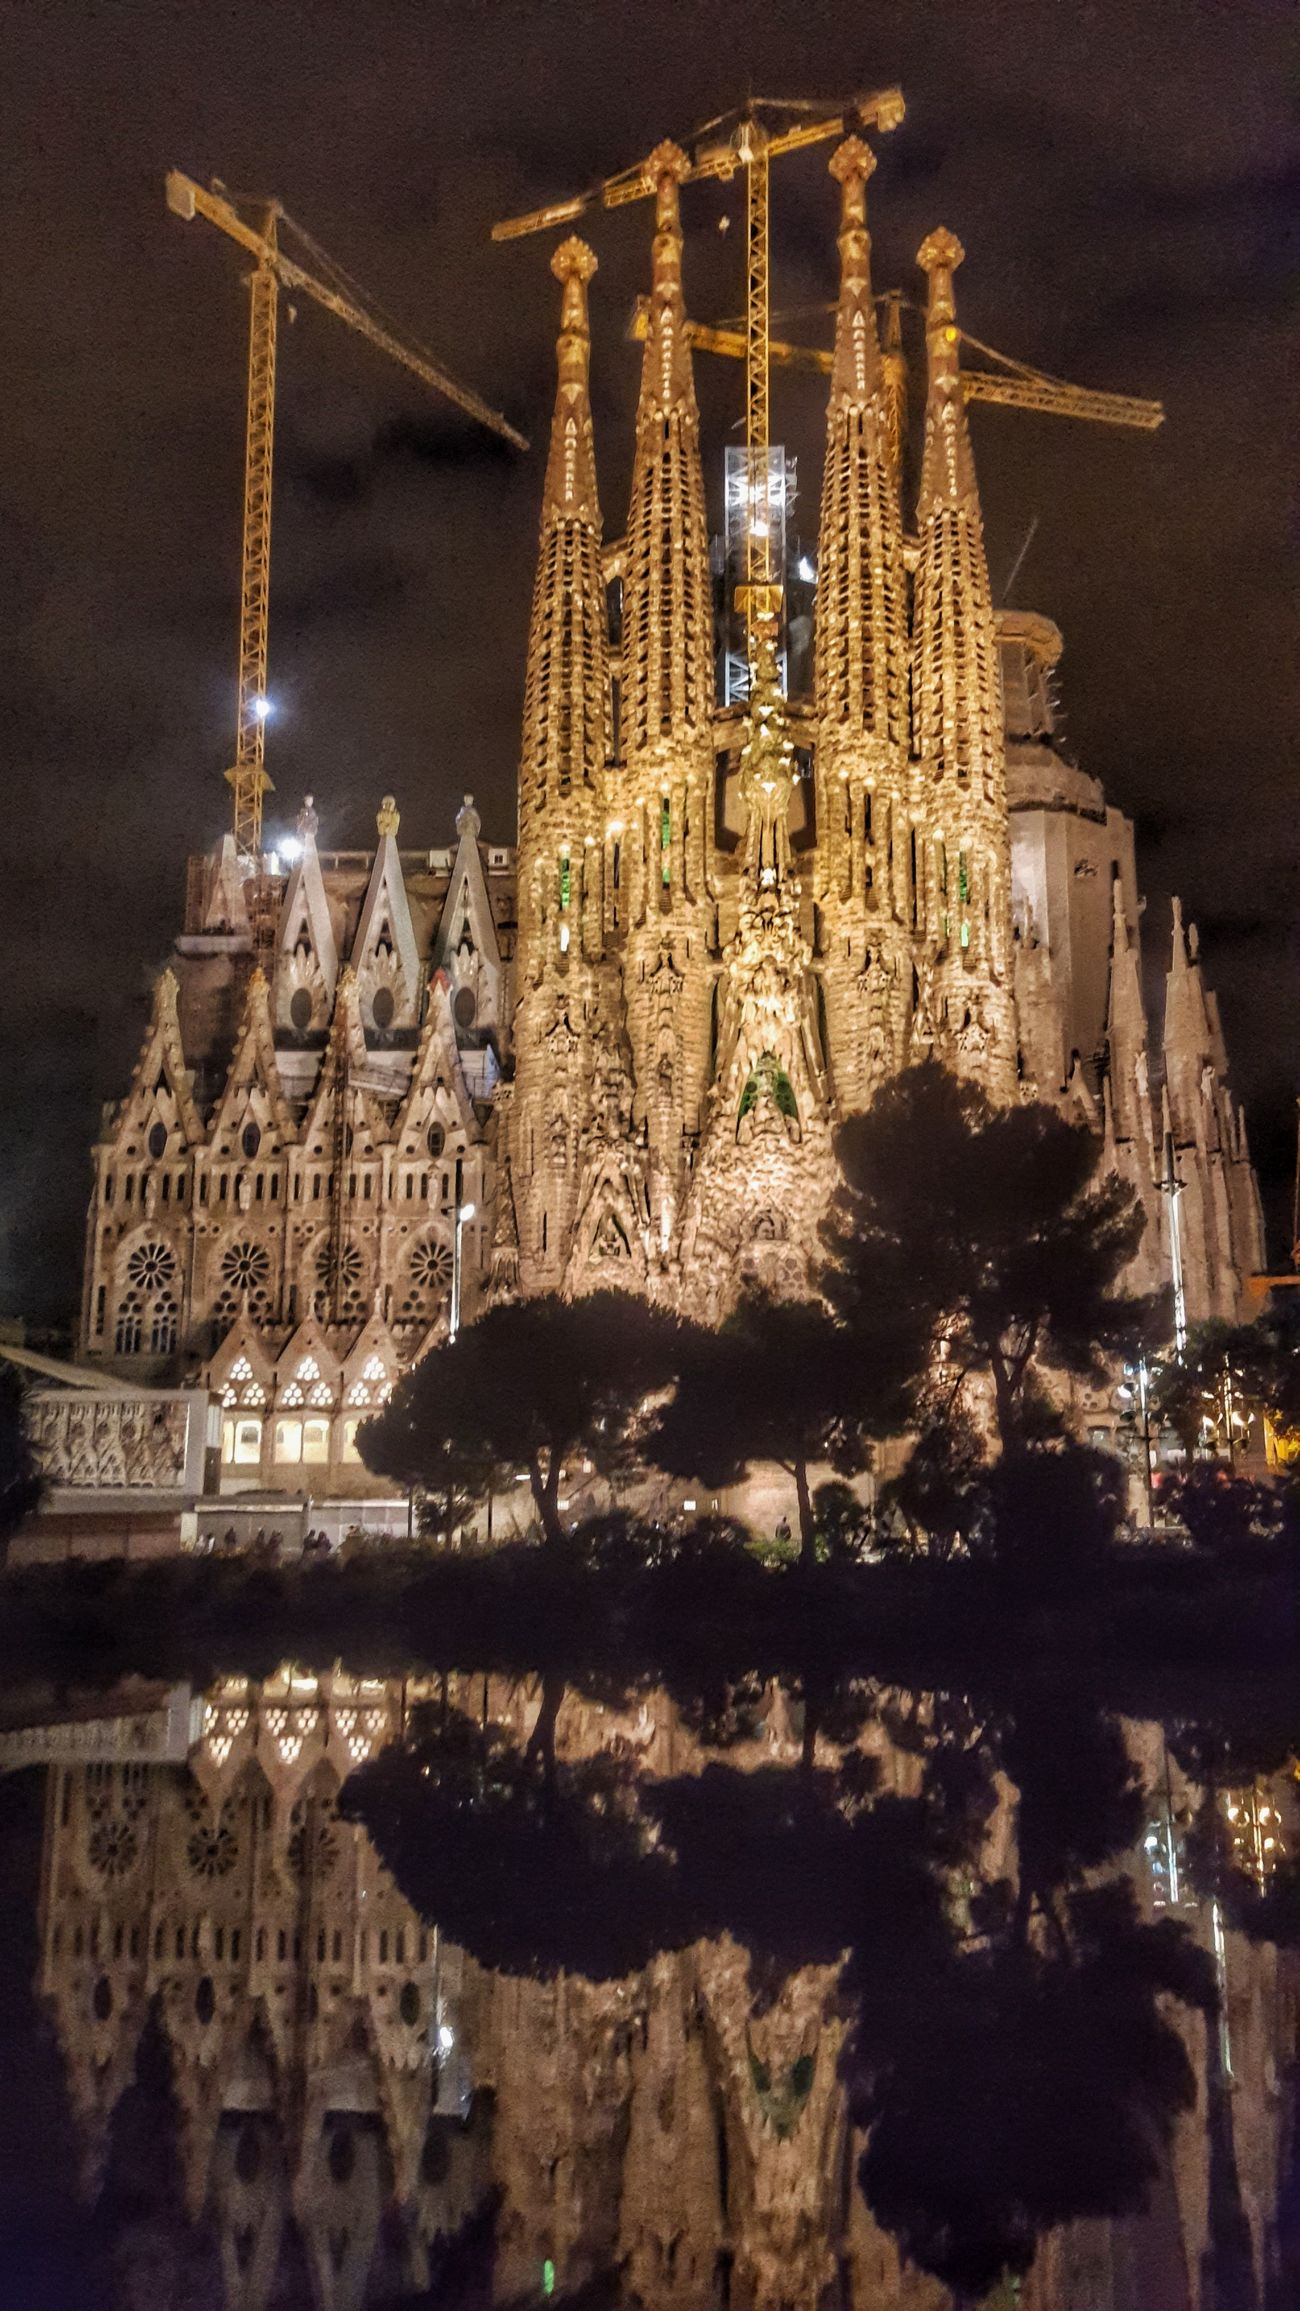 "Sin "" artilugios "" no cabe ... Architecture Illuminated Night City Christmas Decoration Basilica Templo Religious Place Religion Architecture Midnight Nightphotography Night Lights Capture The Moment From My Point Of View Reflejos Reflections Beautifully Organized"